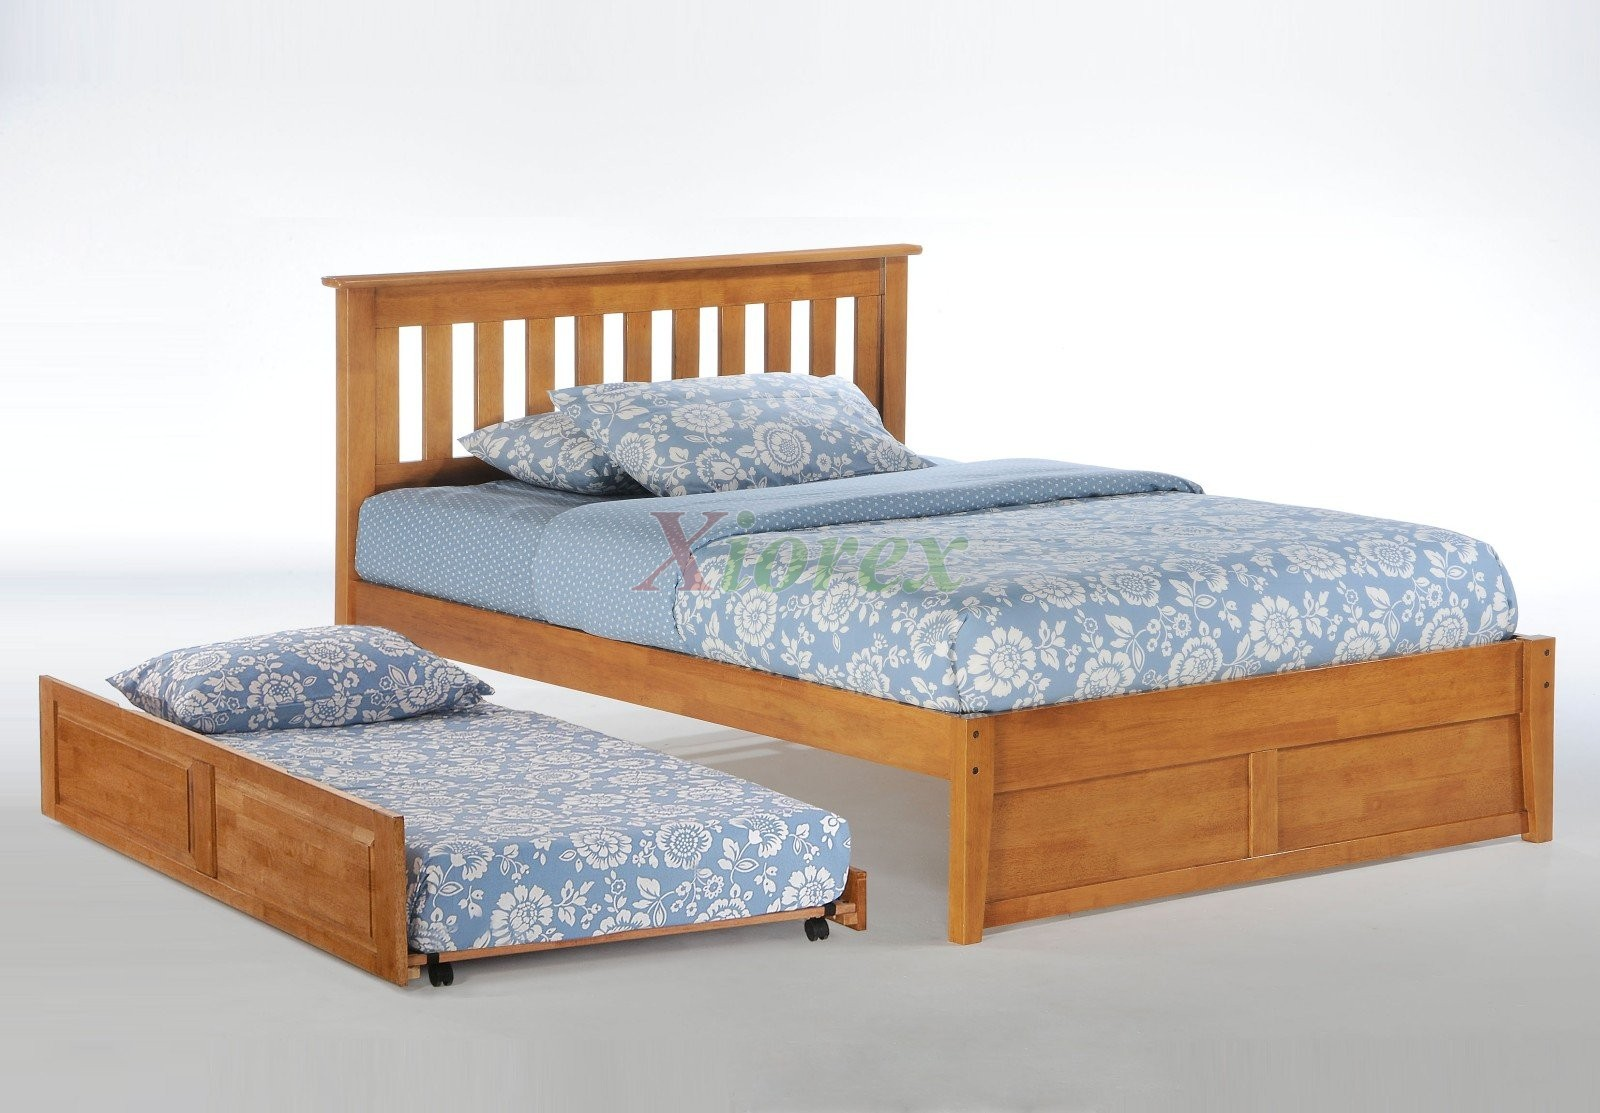 night and day rosemary bed platform bed w slat headboard. Black Bedroom Furniture Sets. Home Design Ideas